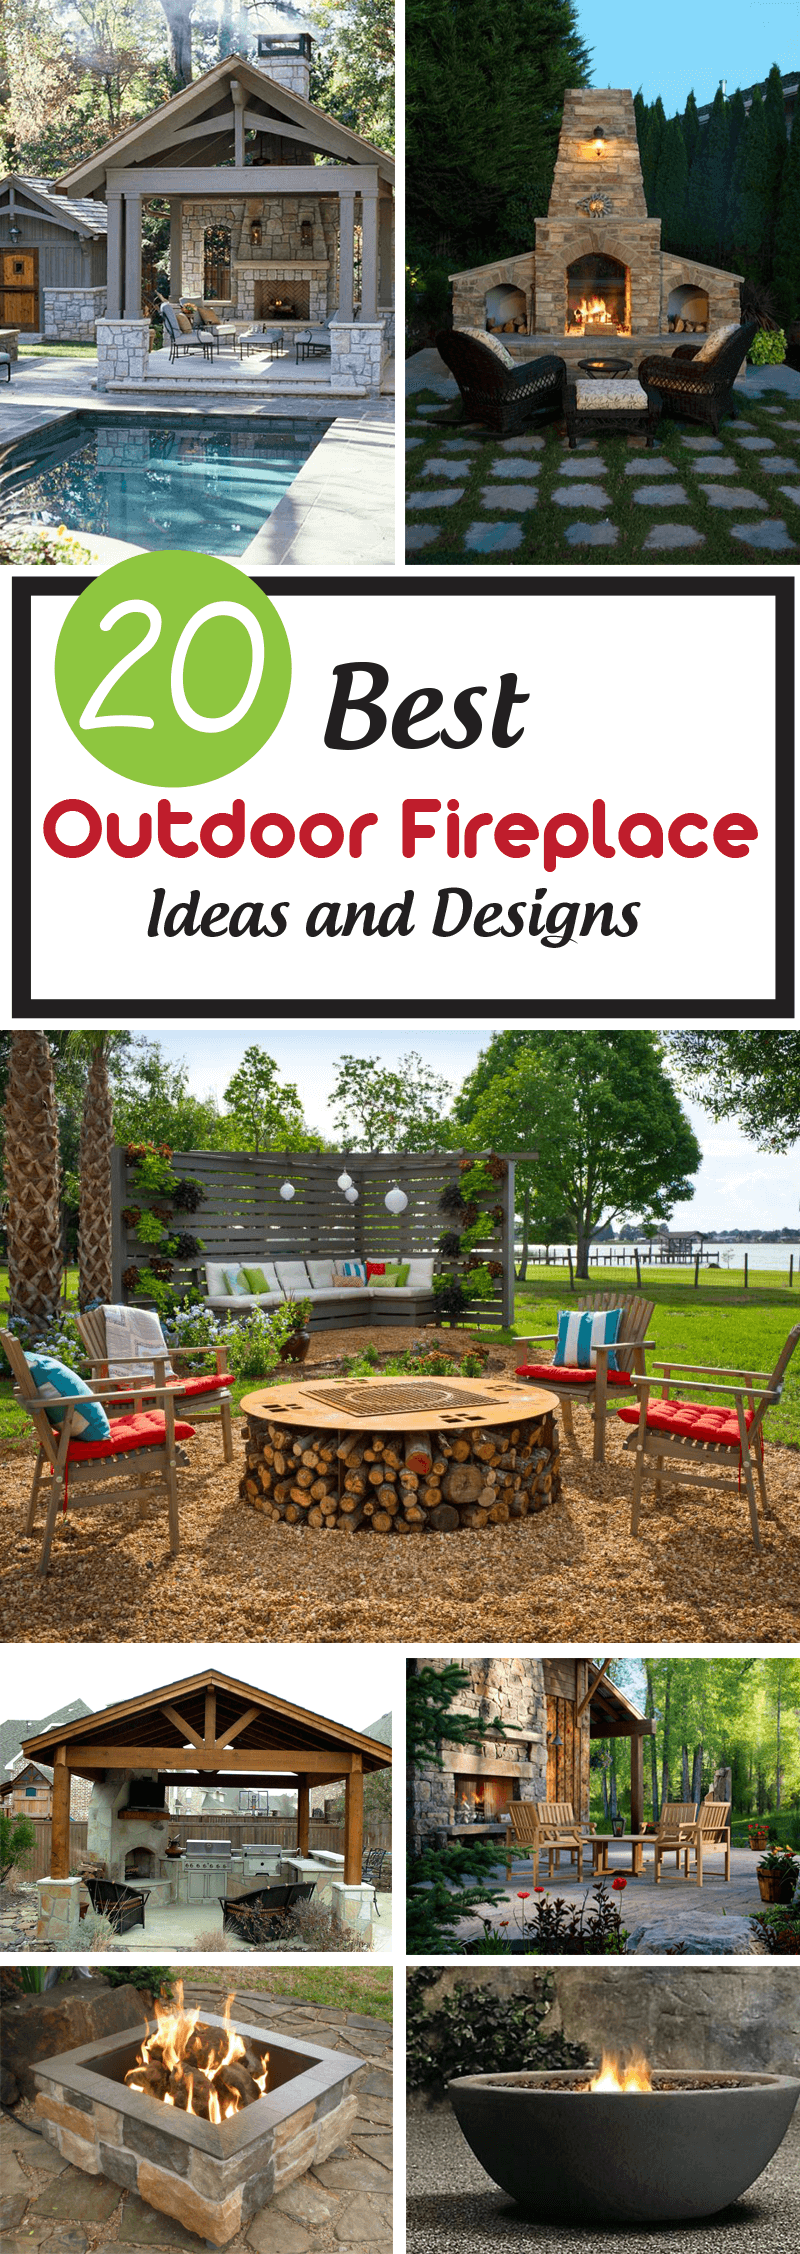 Best Outdoor Fireplace Ideas and Designs